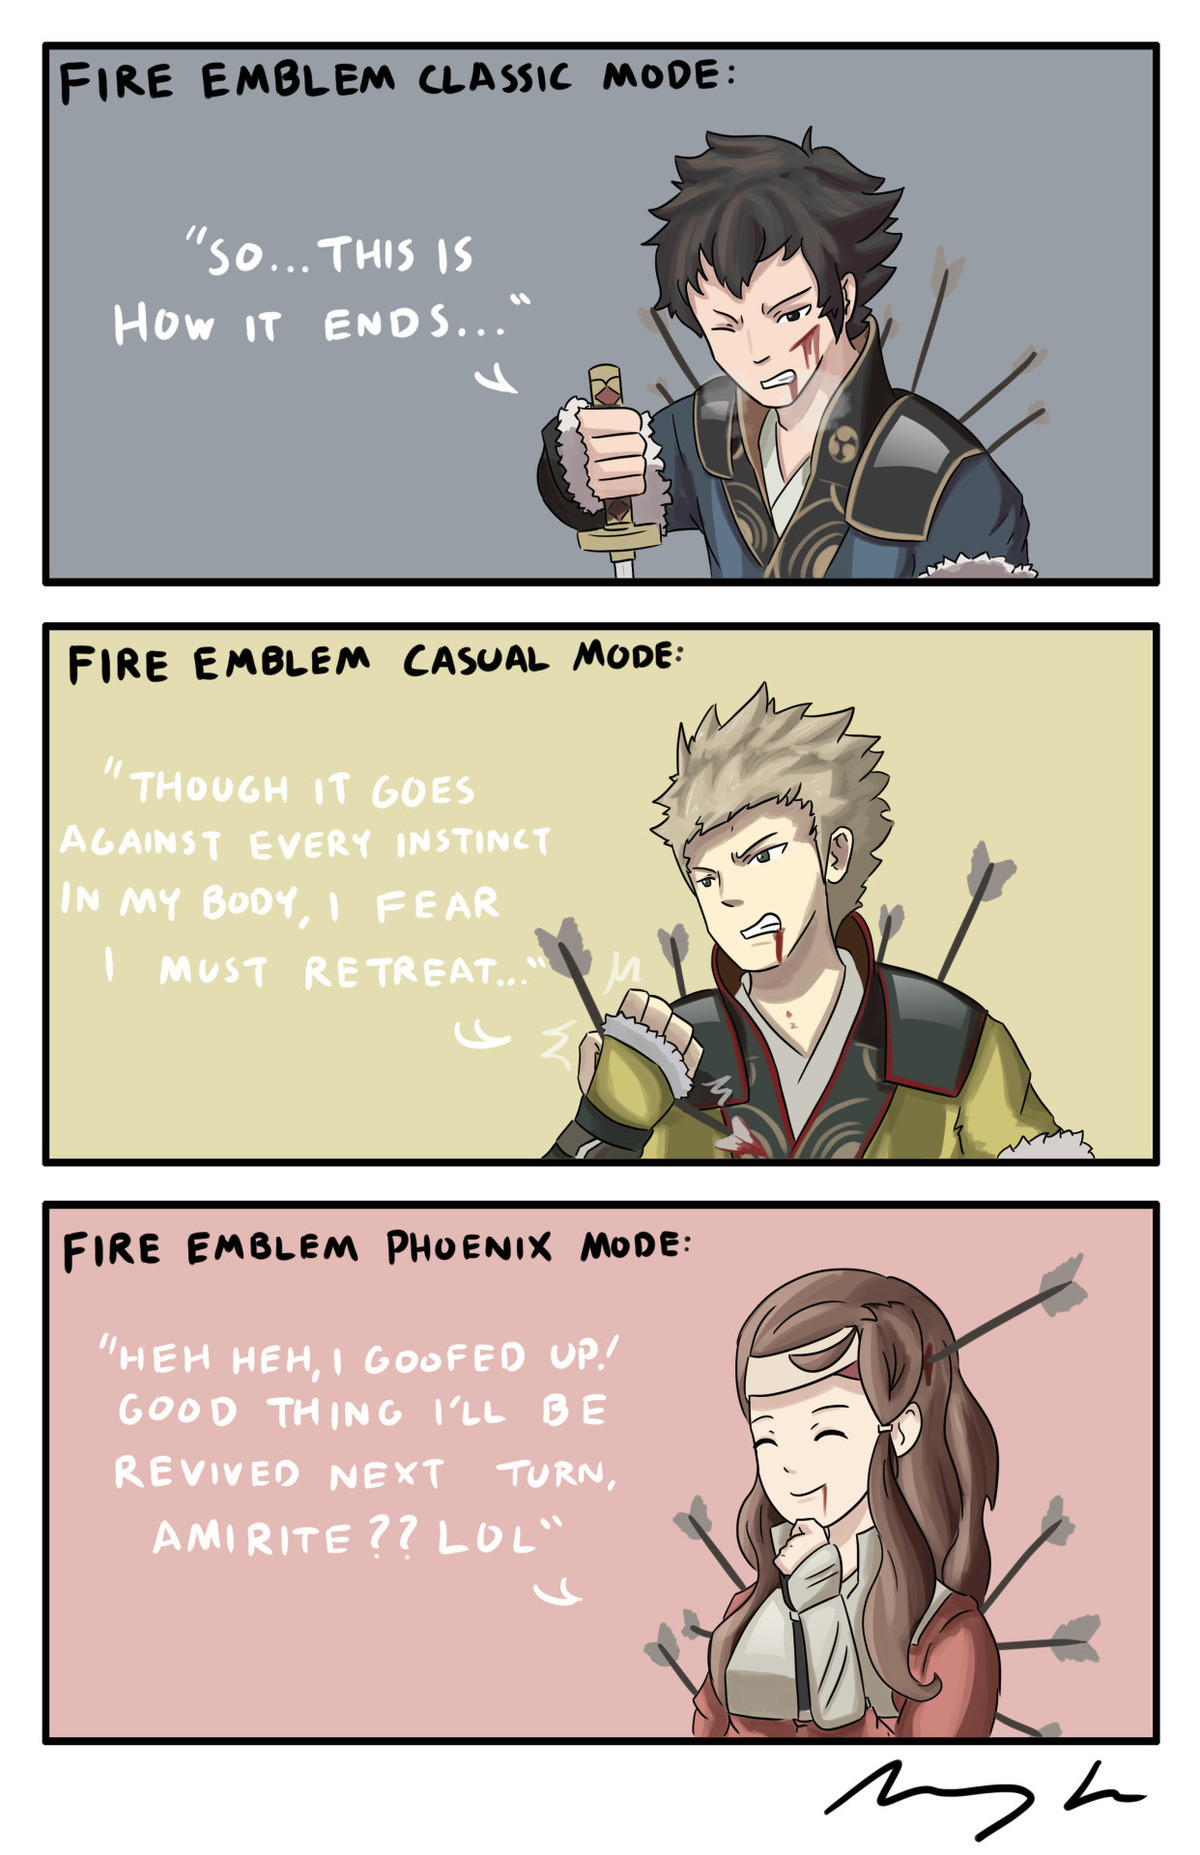 Fire Emblem Modes. .. Classic mode, but the player resets every chapter when a character dies